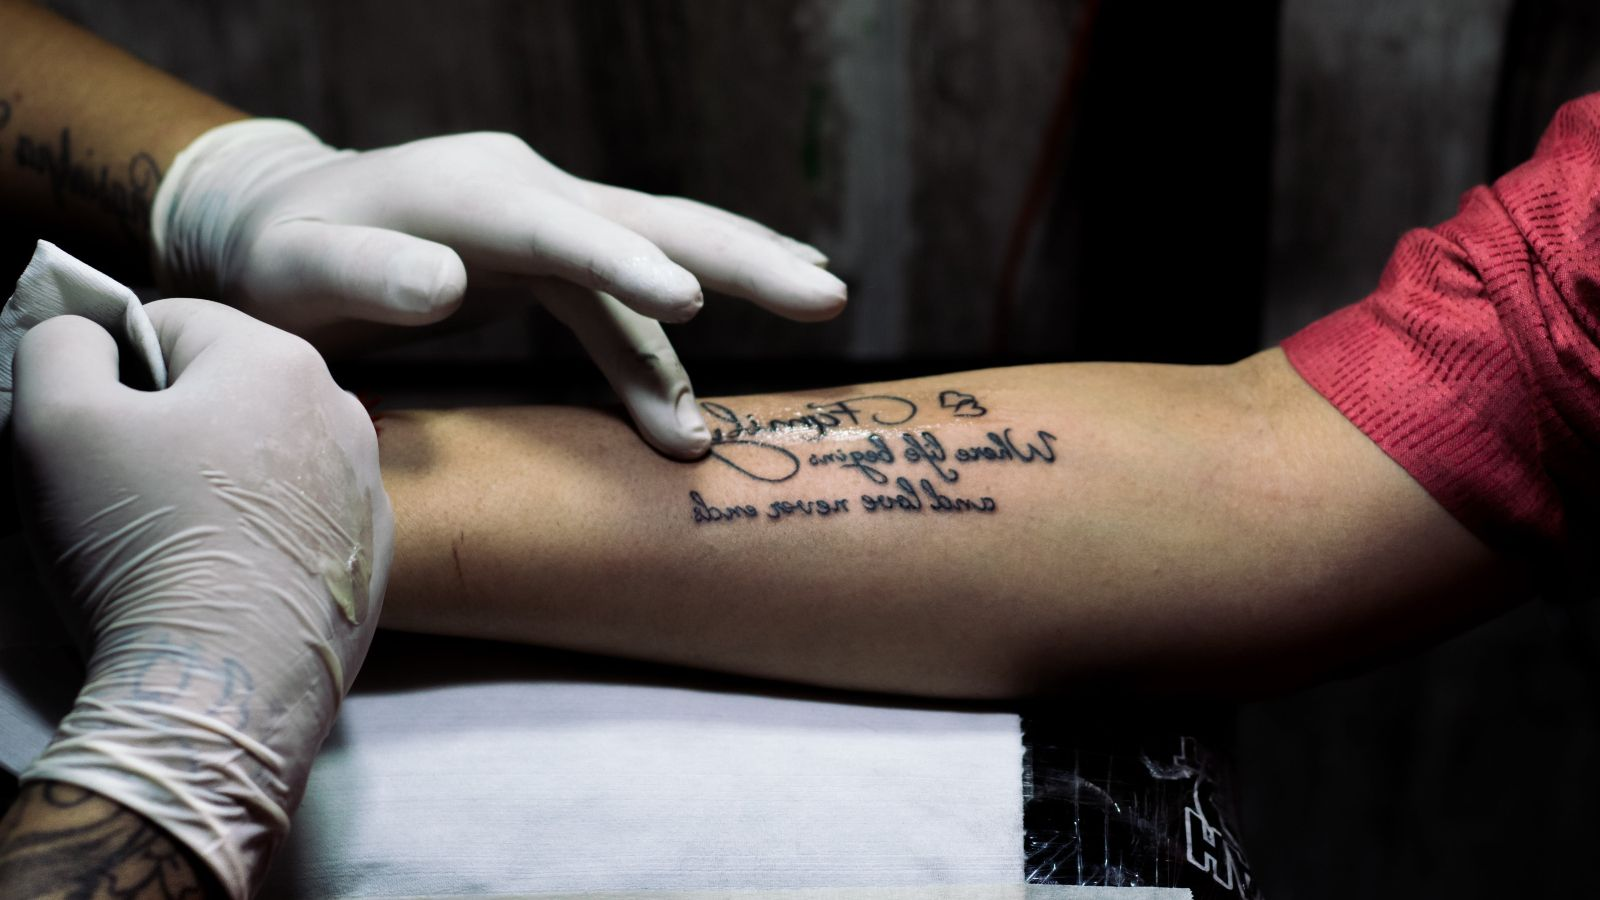 Tattoo artist's hands tattooing person's arm banner image